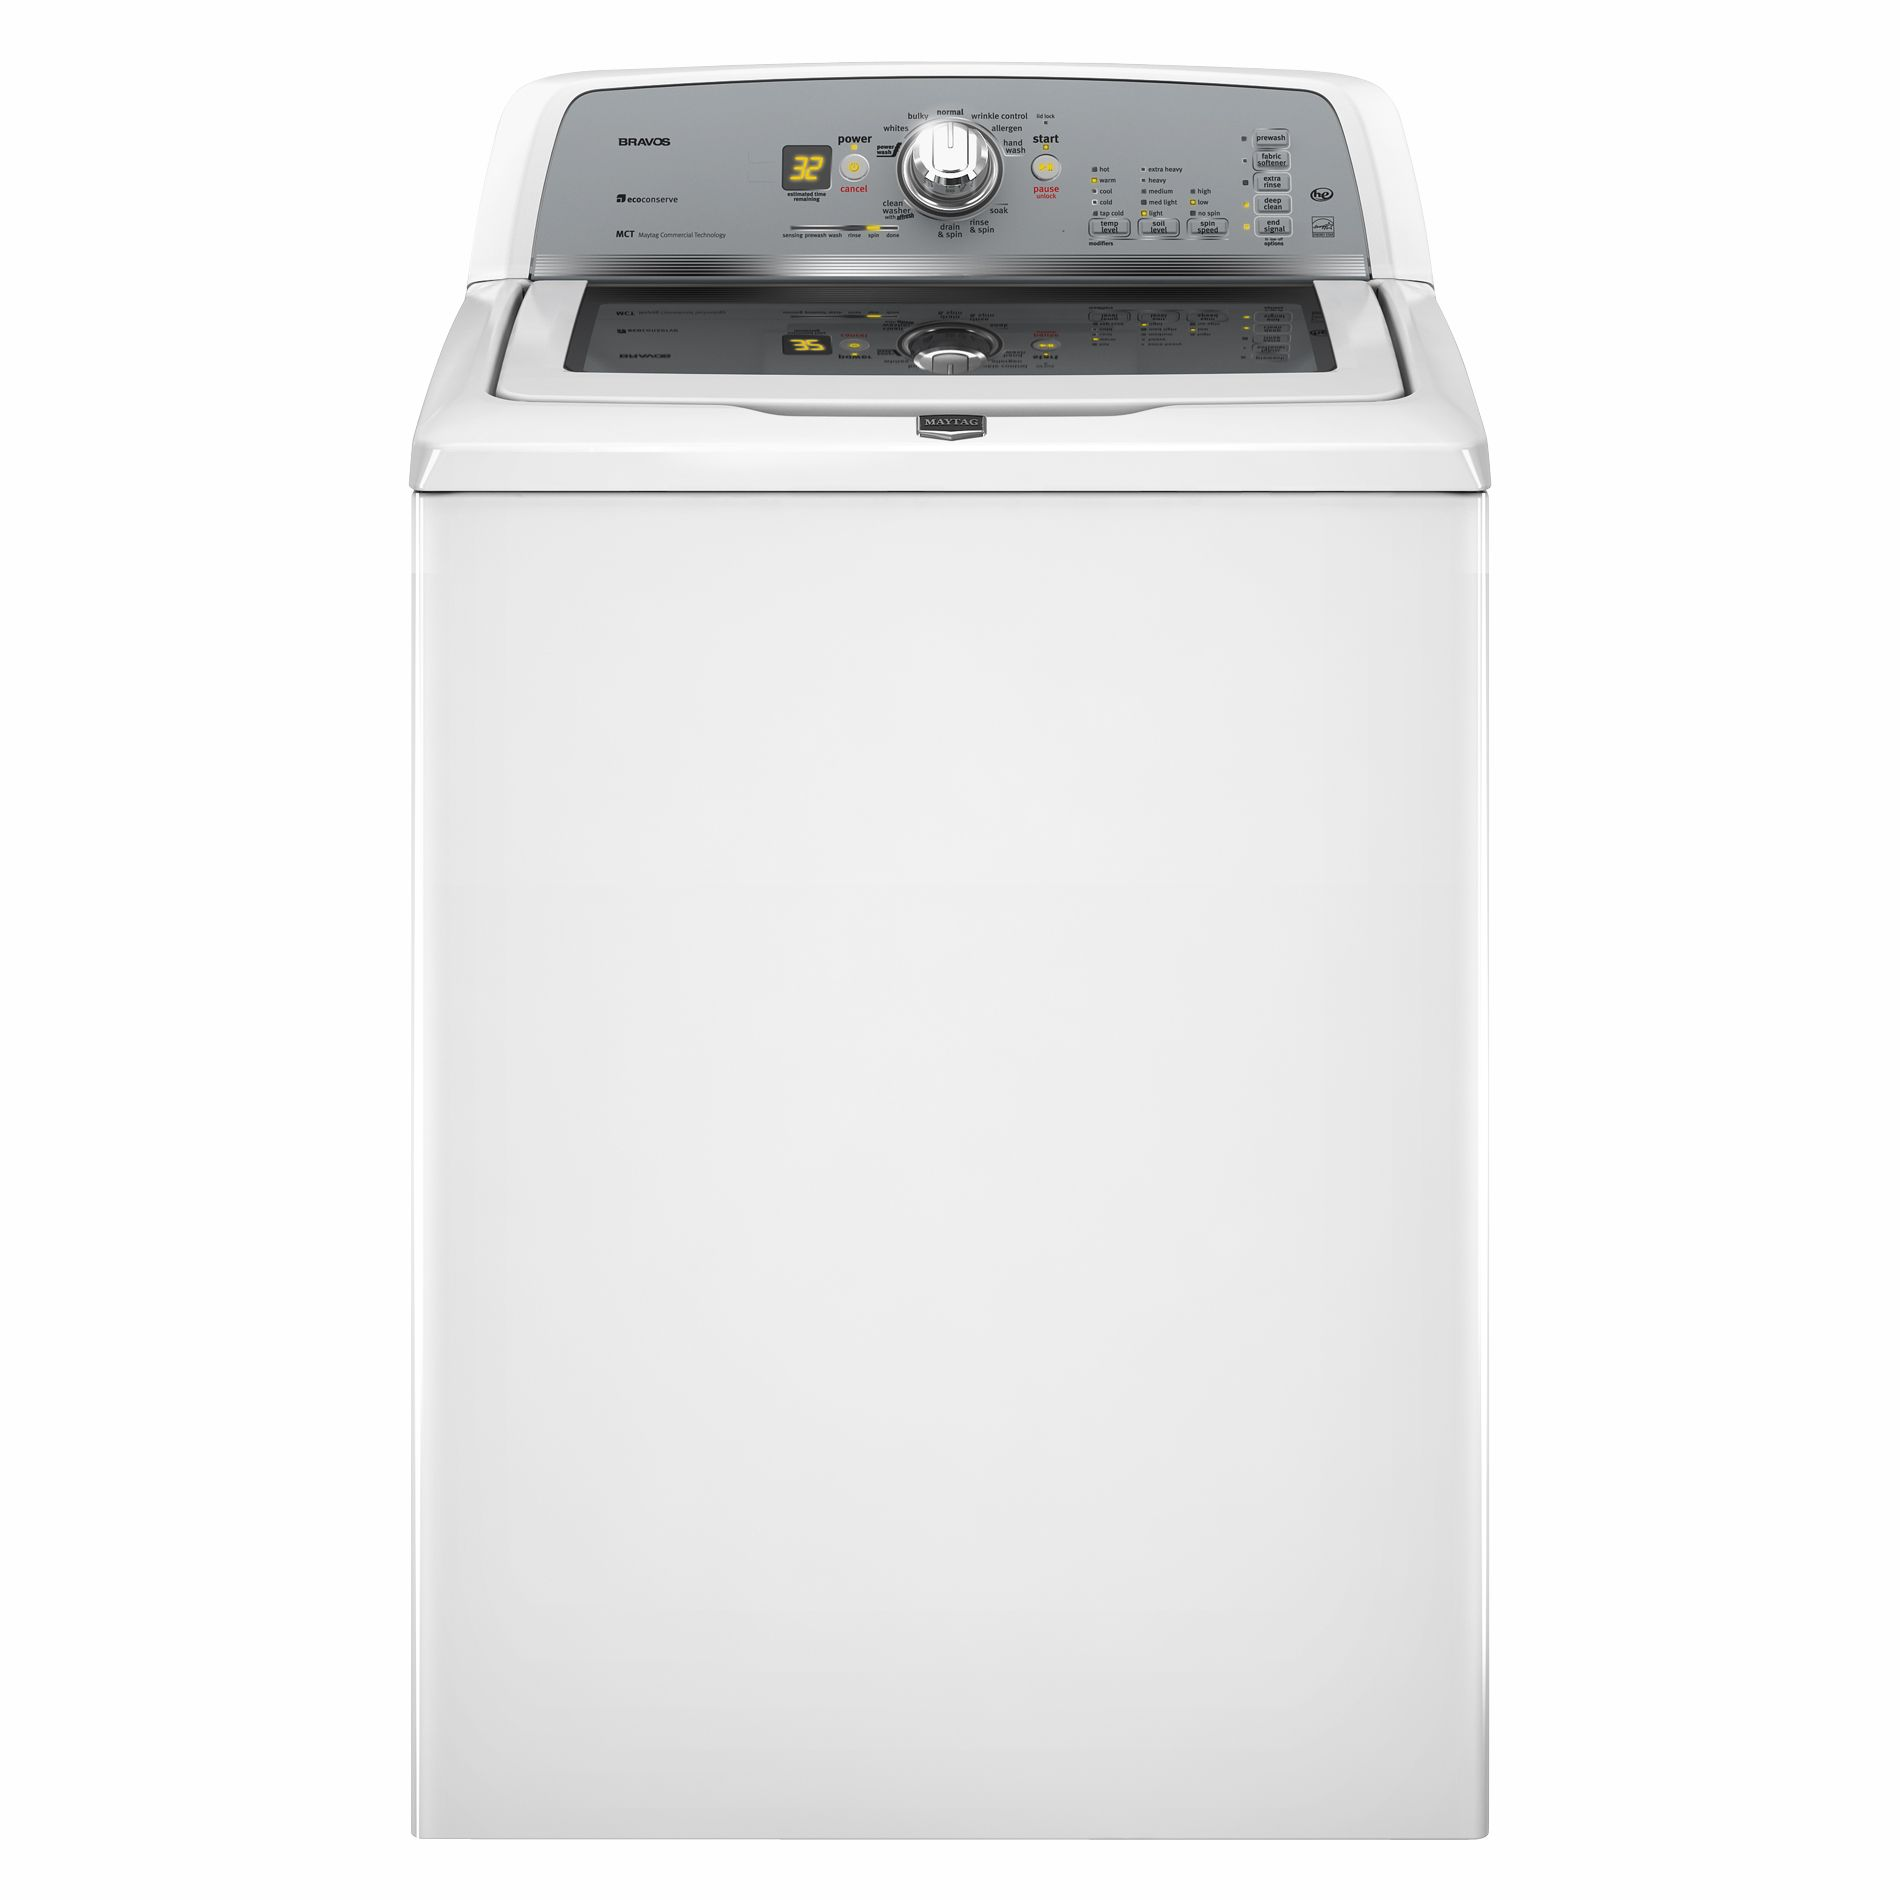 Maytag Bravos X 3.6 cu. ft. High-Efficiency Top-Load  Washer w/ Low-Water Wash - White                                                  Maytag 3.6 cu. ft. High-Efficiency Top-Load Washer - White